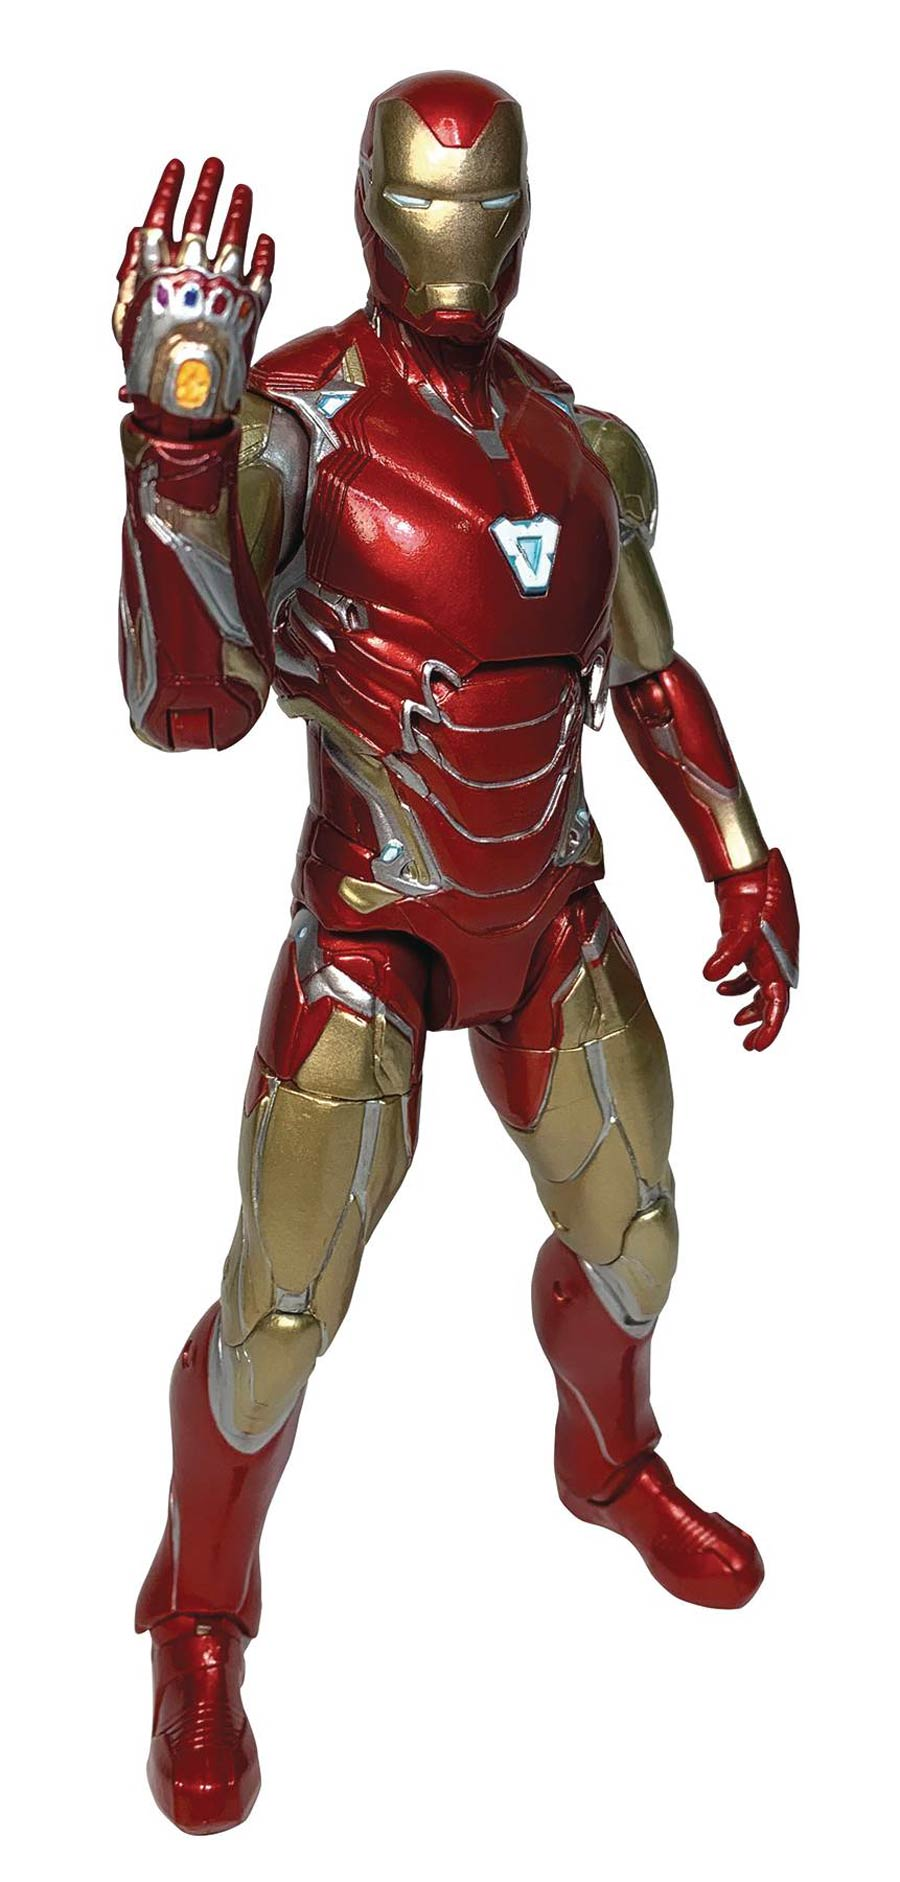 Marvel Select Avengers Endgame Iron Man MK85 Action Figure